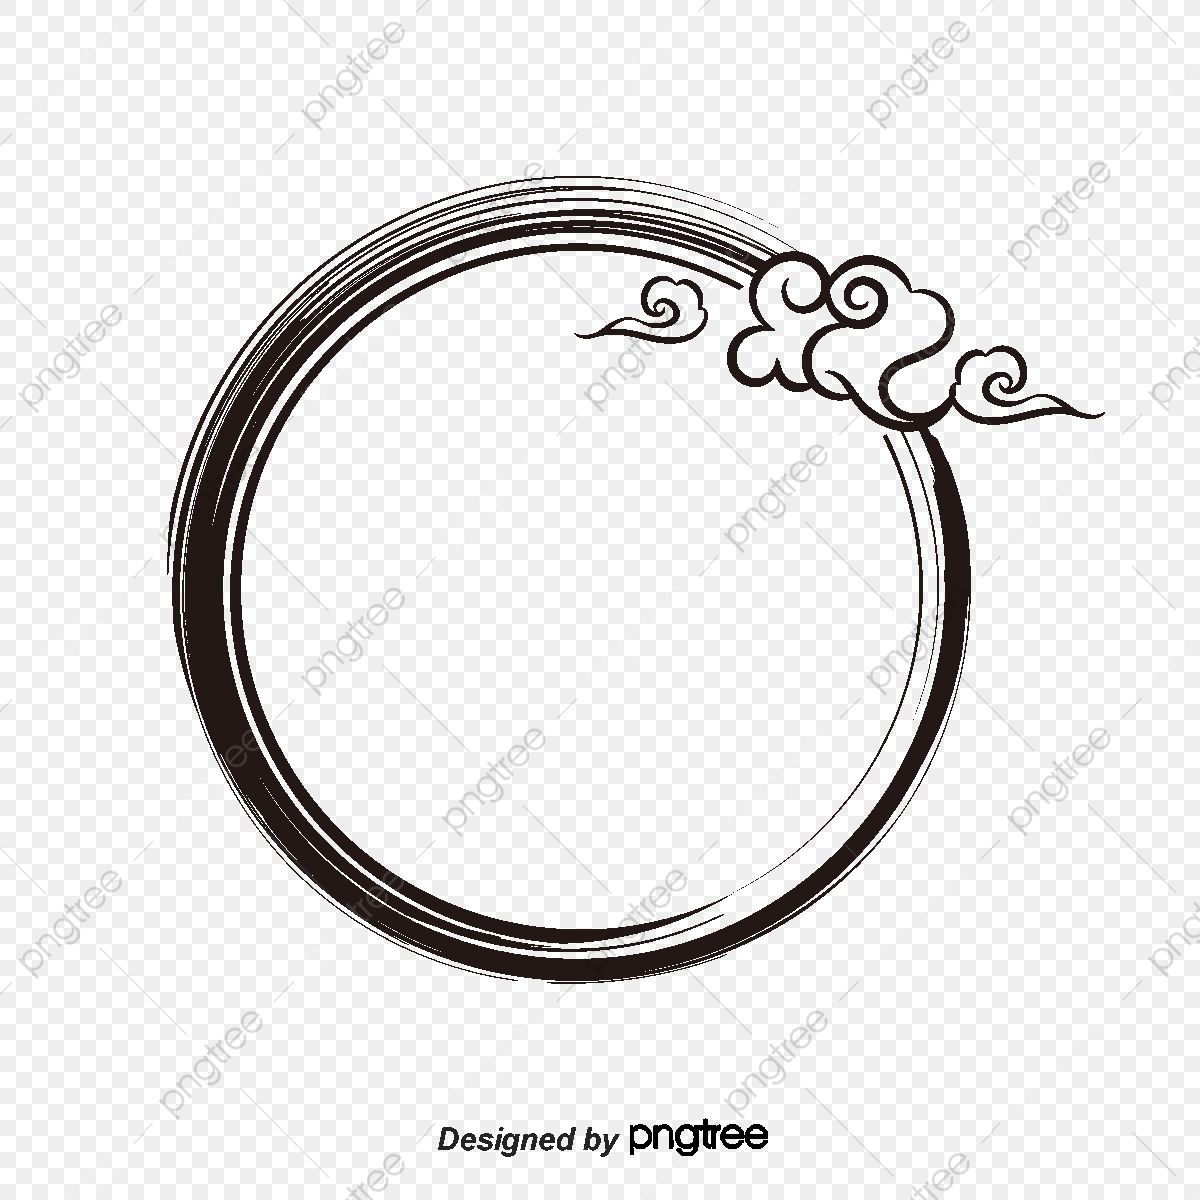 Vector Ink Circle Border Vector Frame Pomo Png And Vector With Transparent Background For Free Download Circle Borders Graphic Design Background Templates Frame Border Design